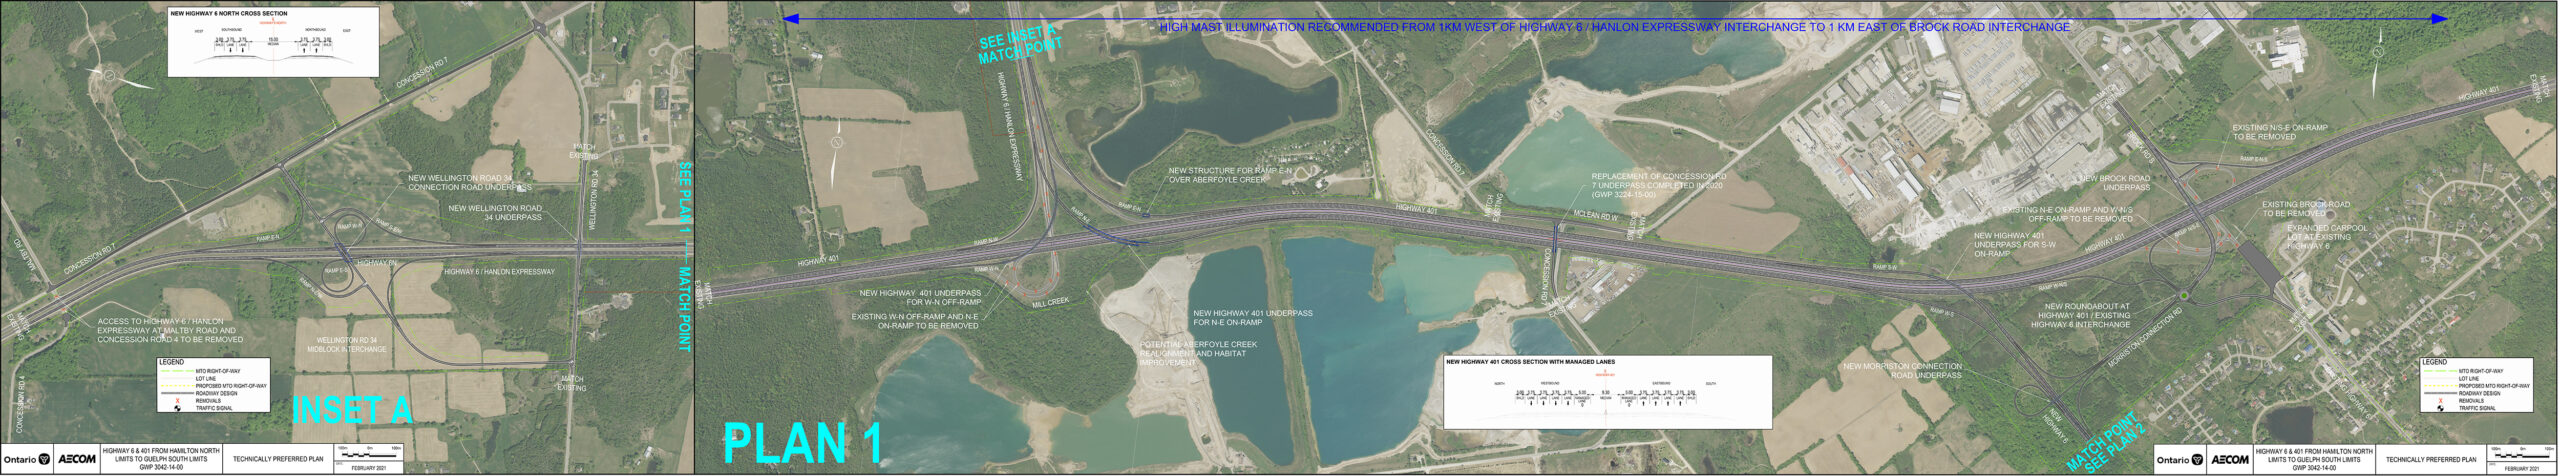 Aerial map 1 of 2 showing the recommended design plan for the Highways 6 and 401 Improvements Project. For more information on the recommended plan design please contact the project team.